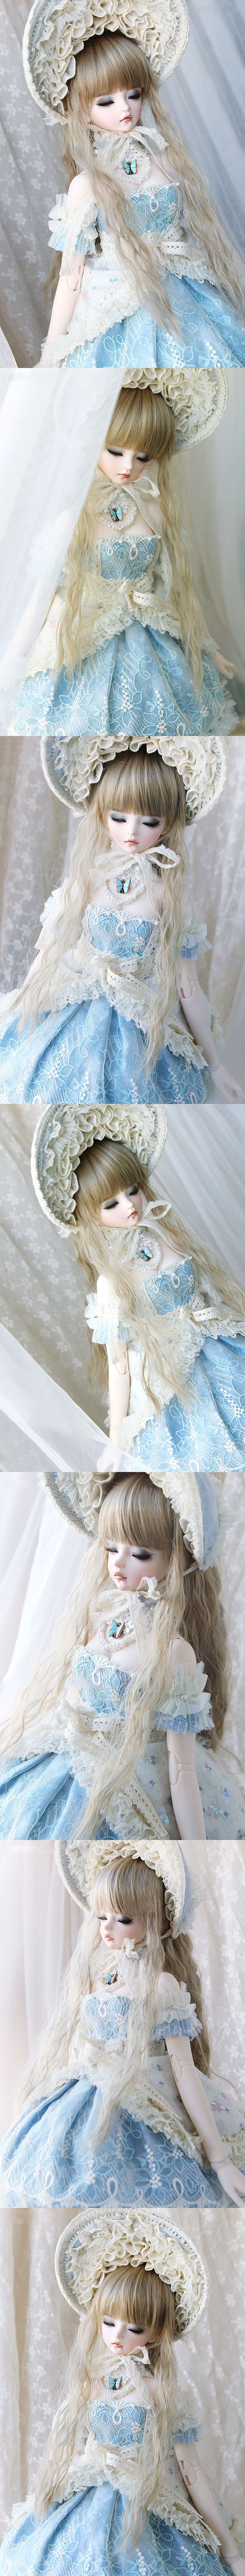 BJD Sleeping Cordelia 60cm Girl Ball-jointed Doll